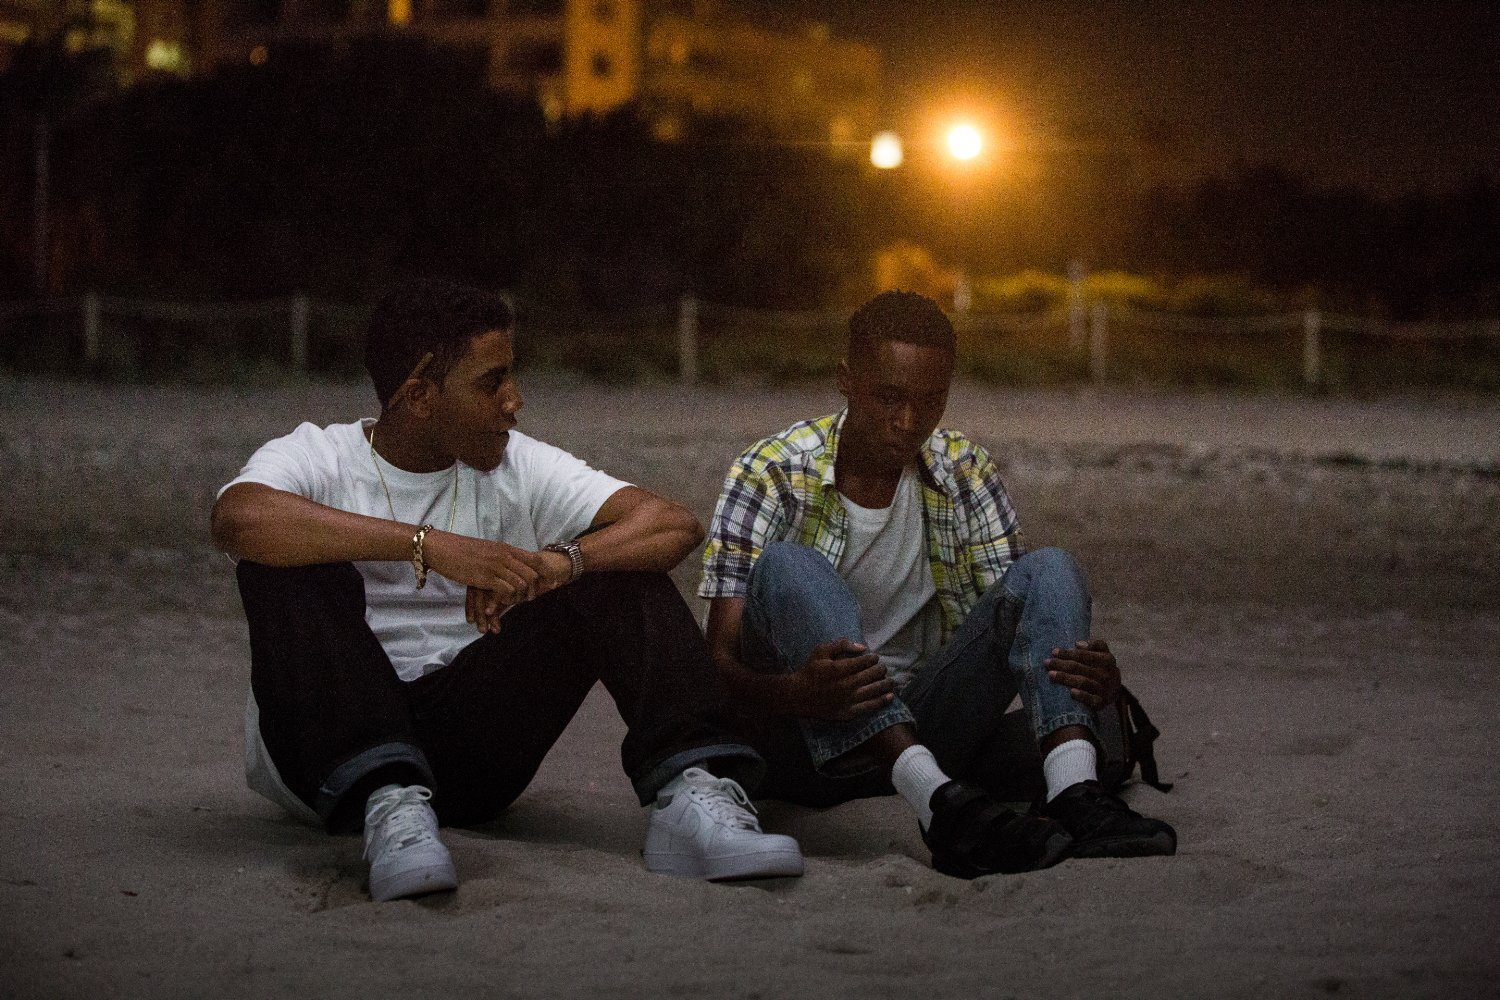 ... in a scene from moonlight based on a play by tarell mccraney this film